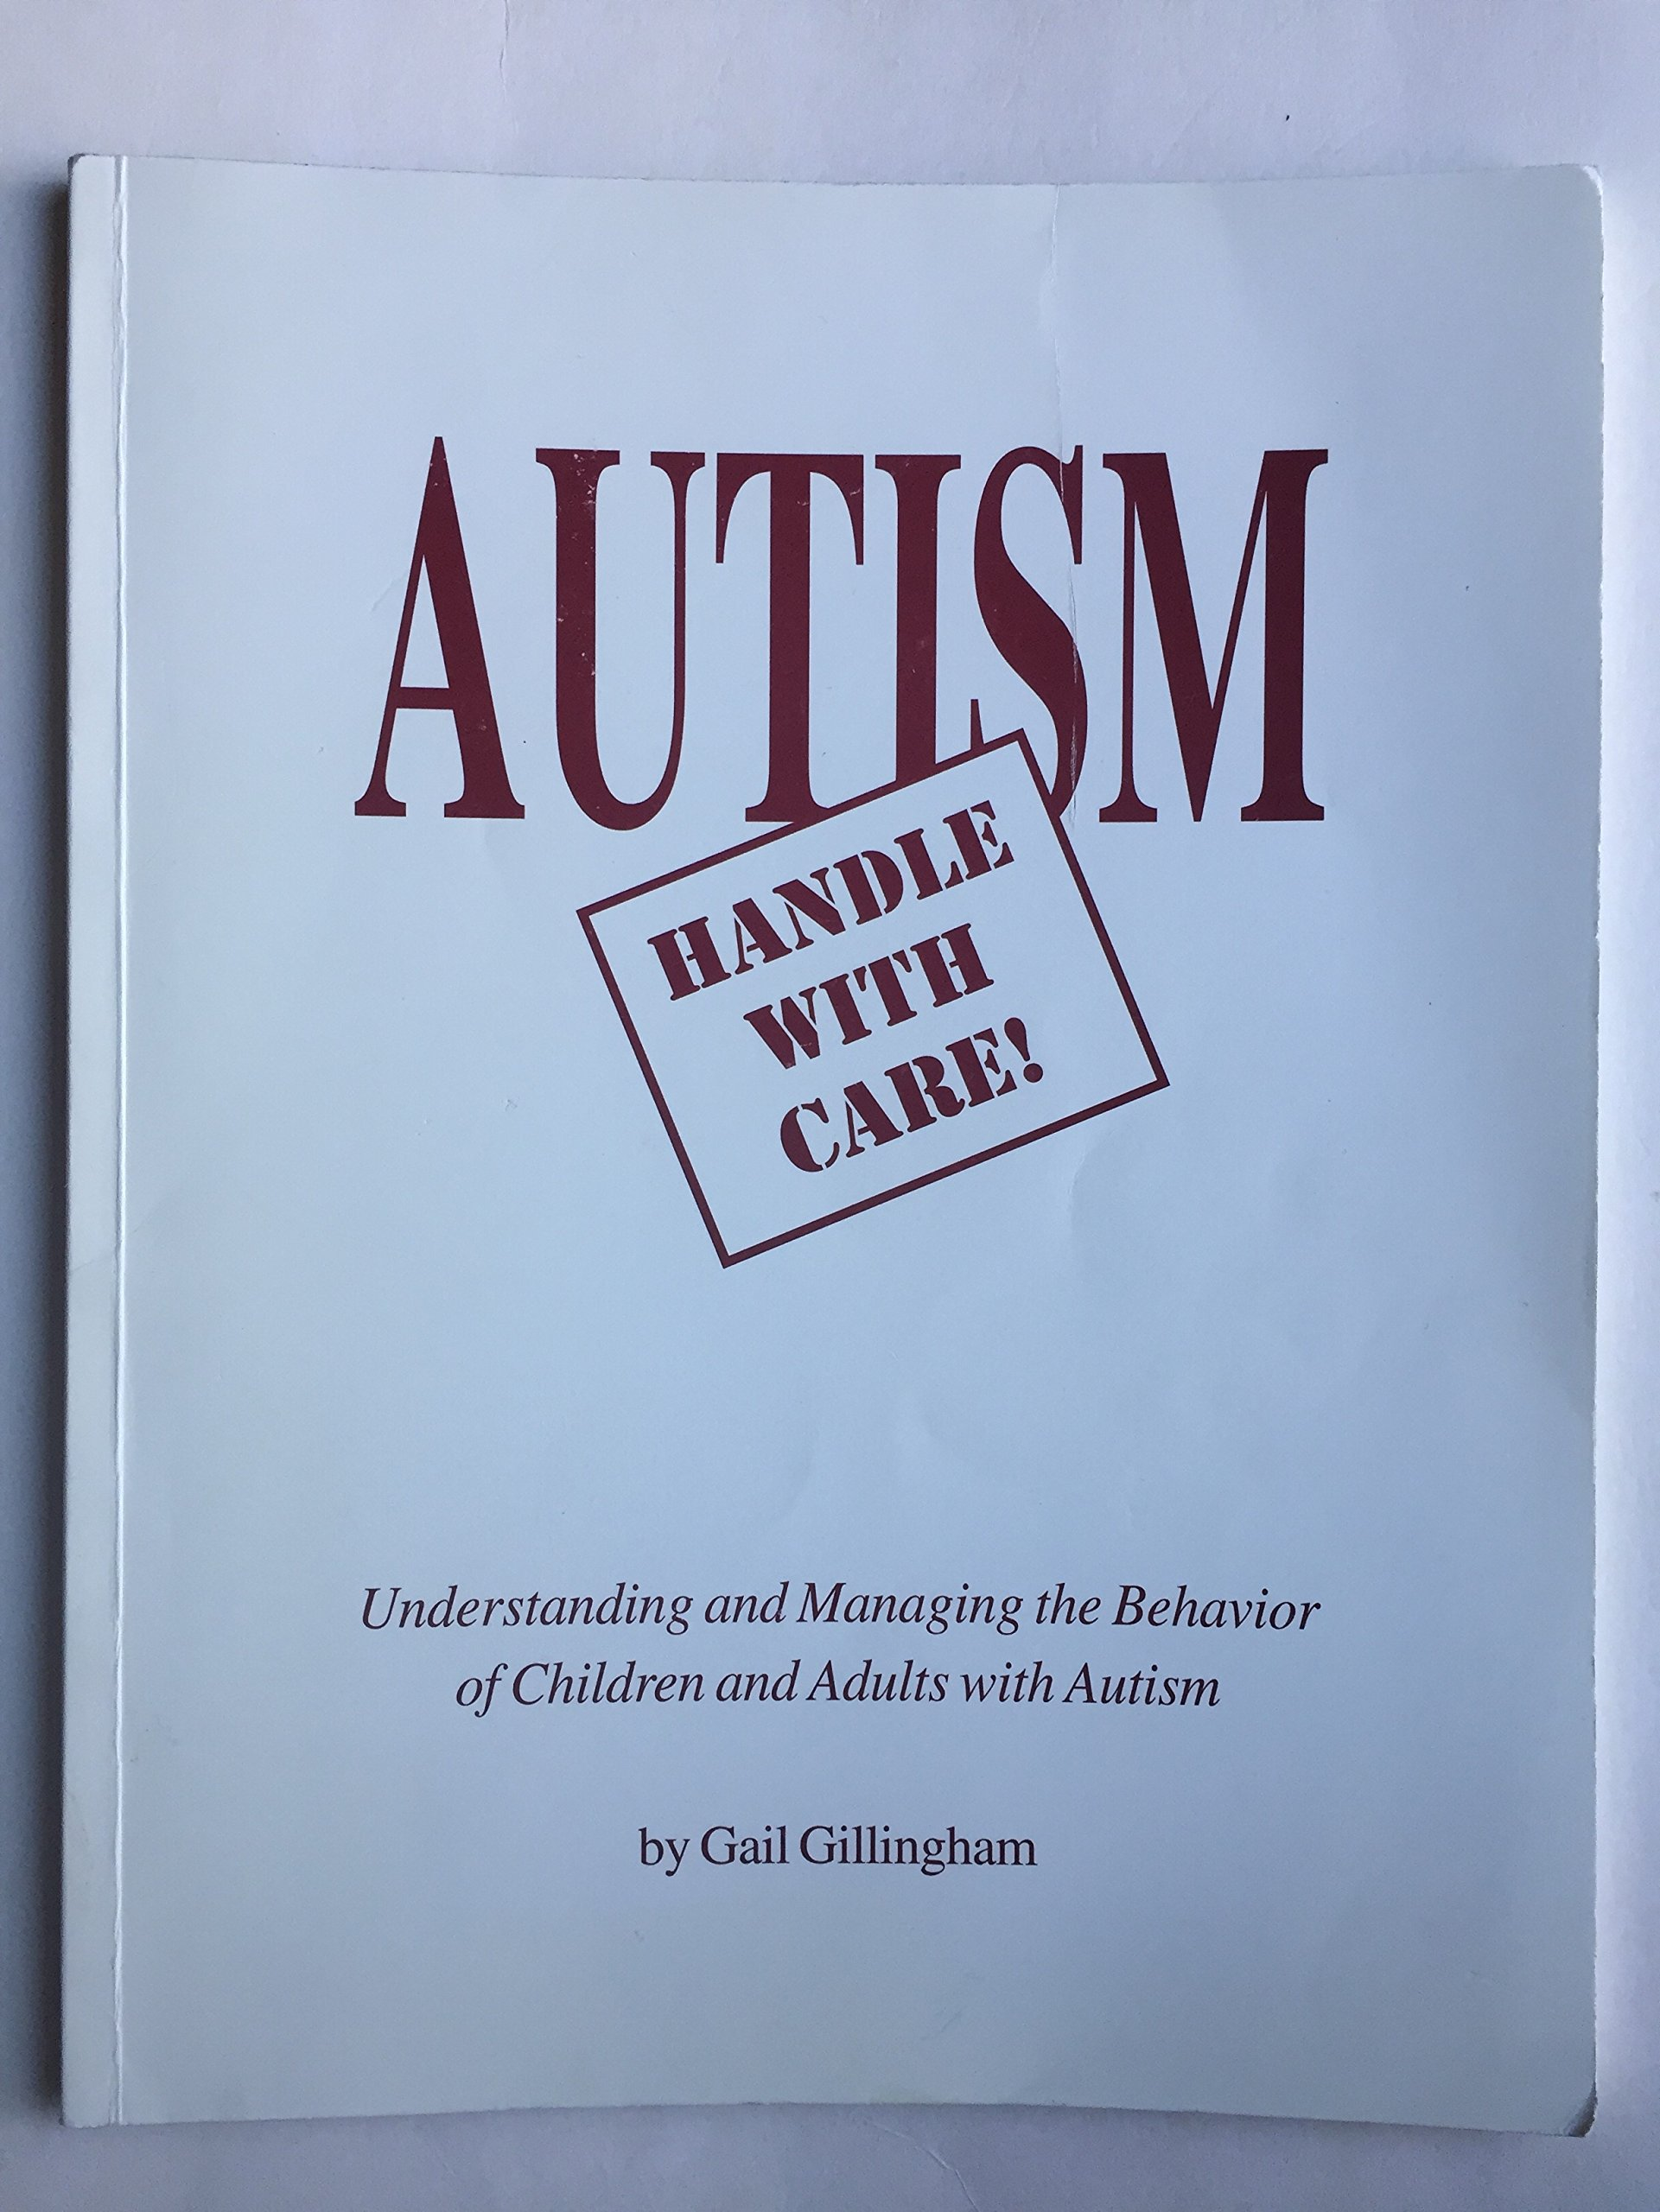 Autism Handle with Care Gail Gillingham Amazon